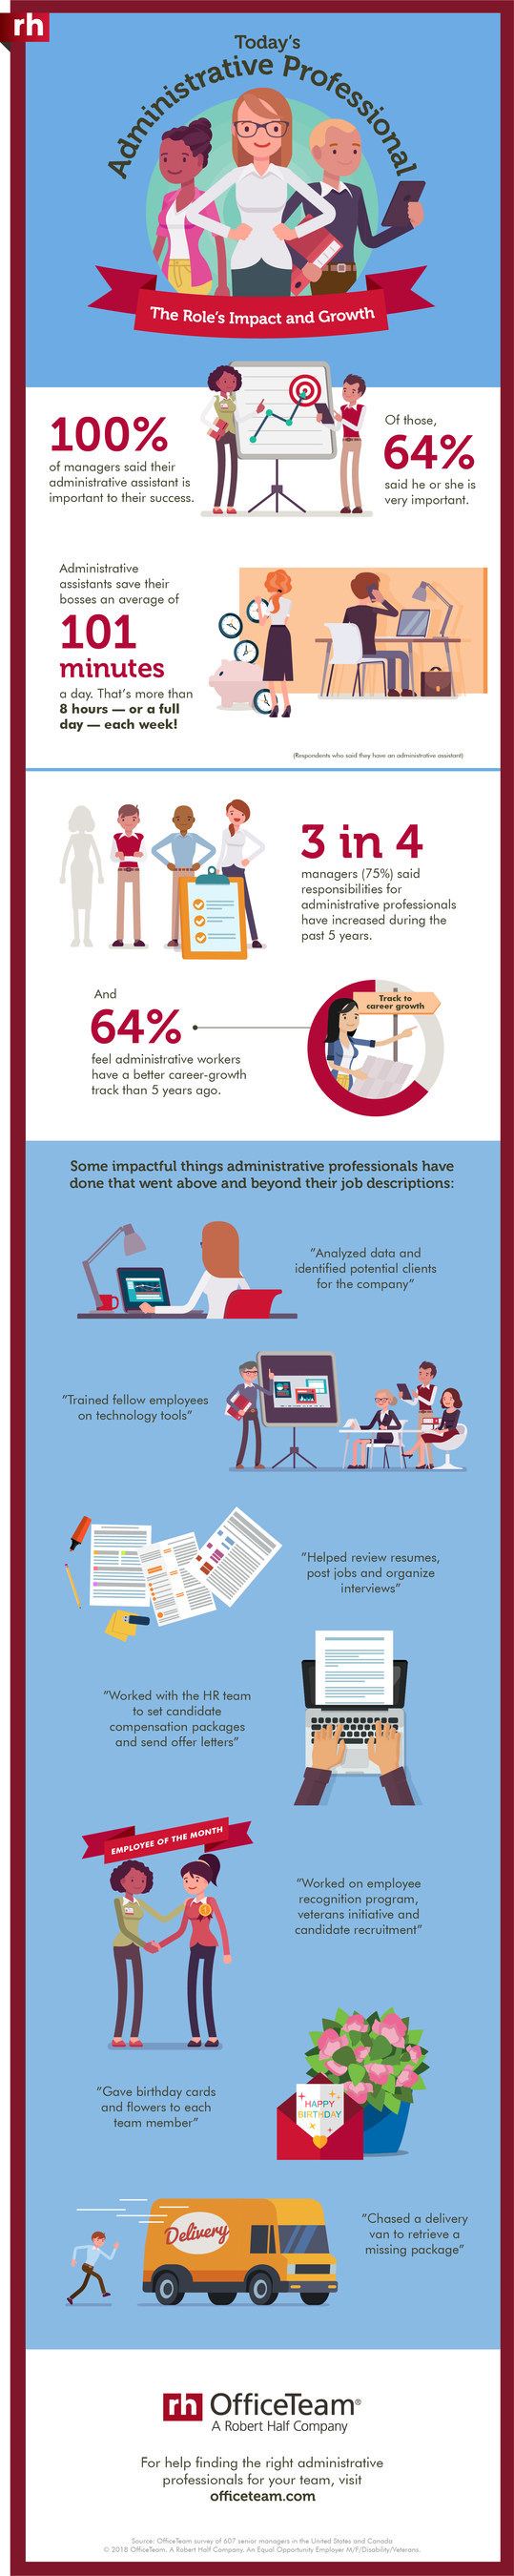 According to an OfficeTeam survey, administrative professionals free up an average of 101 minutes a day for their bosses. See the full infographic with additional stats at https://www.roberthalf.com/blog/salaries-and-skills/todays-administrative-professional-infographic.